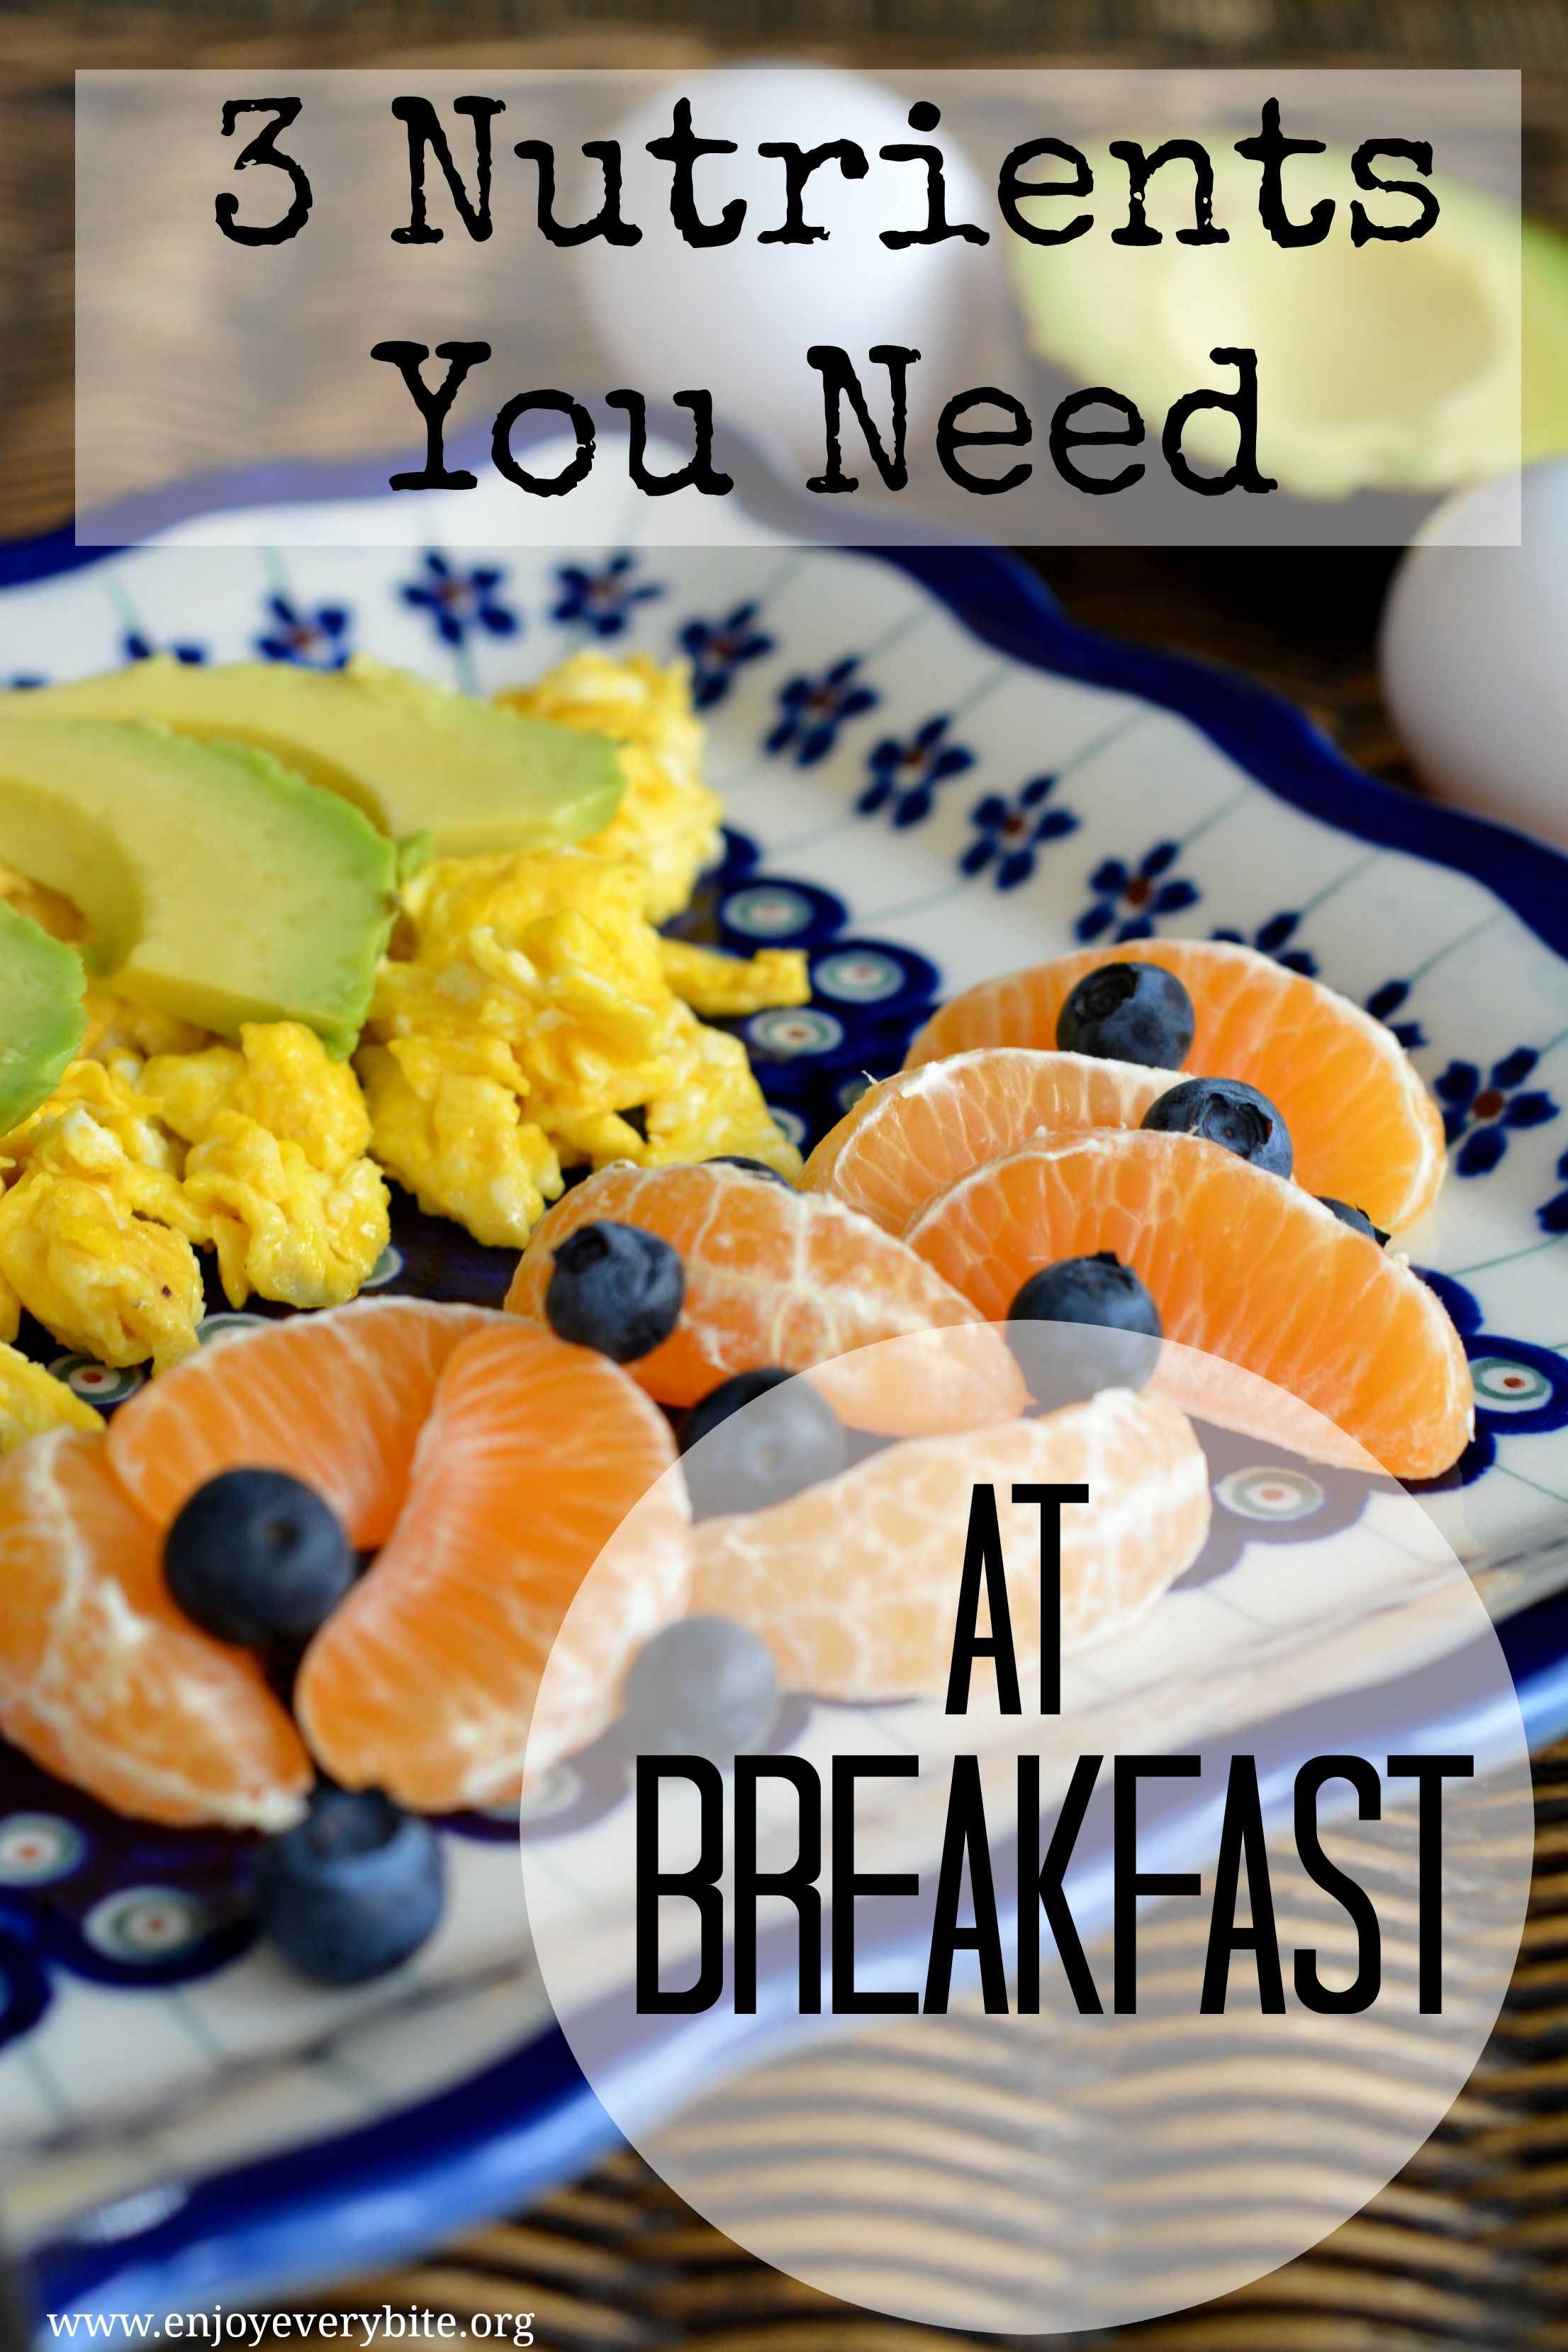 A healthy breakfast checklist to kick start your morning